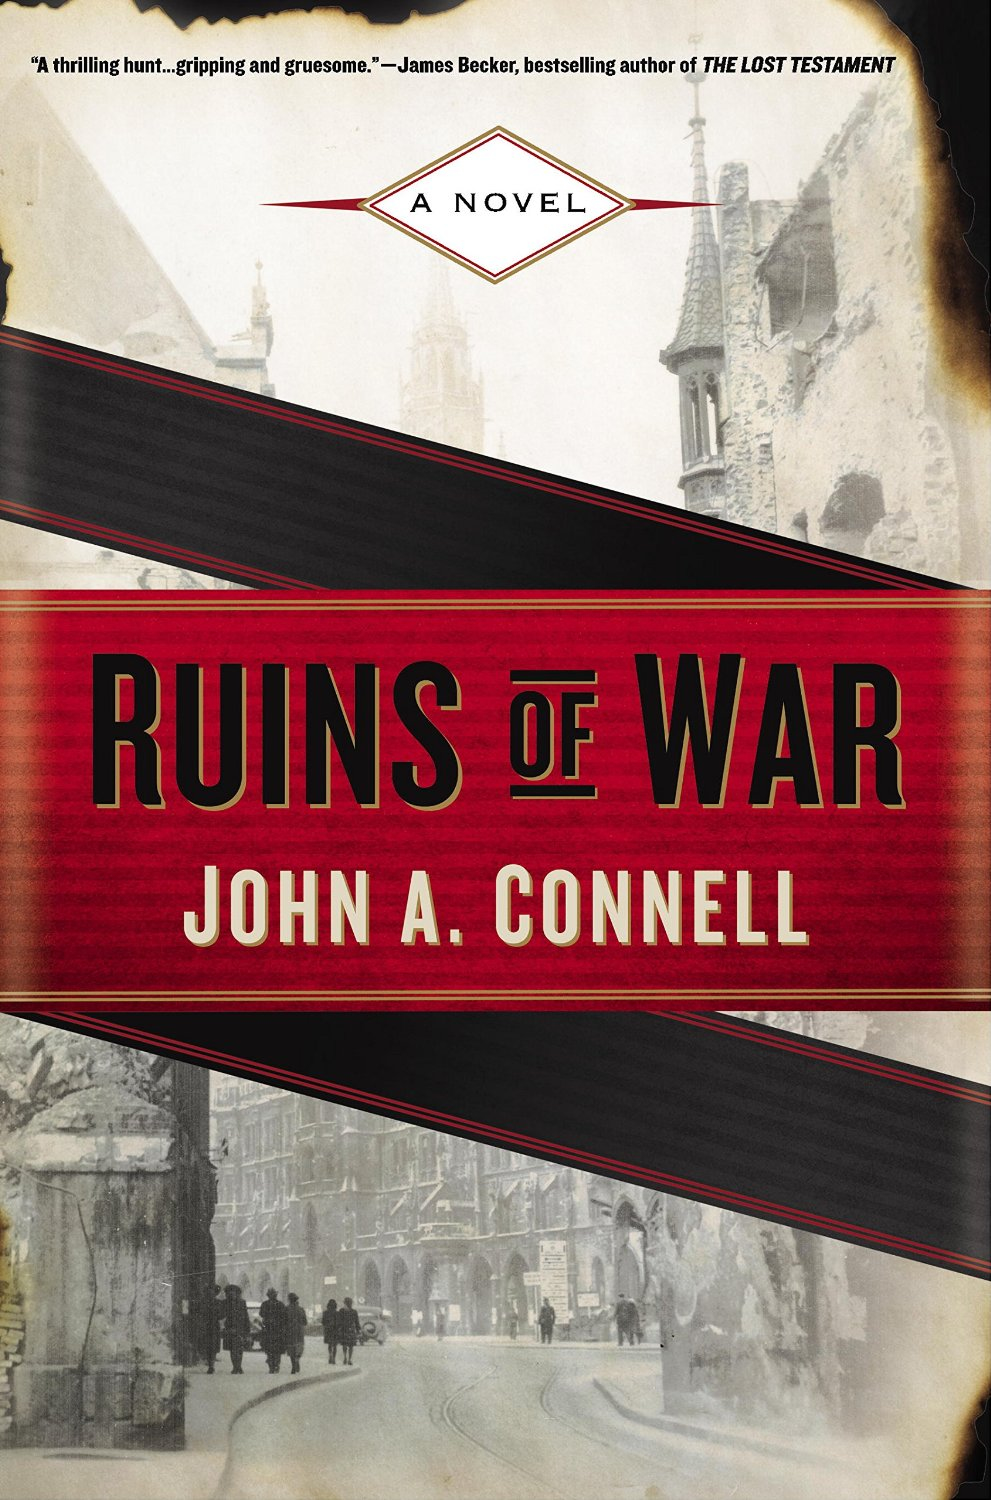 RUINS OF WAR by JOHN A. CONNELL